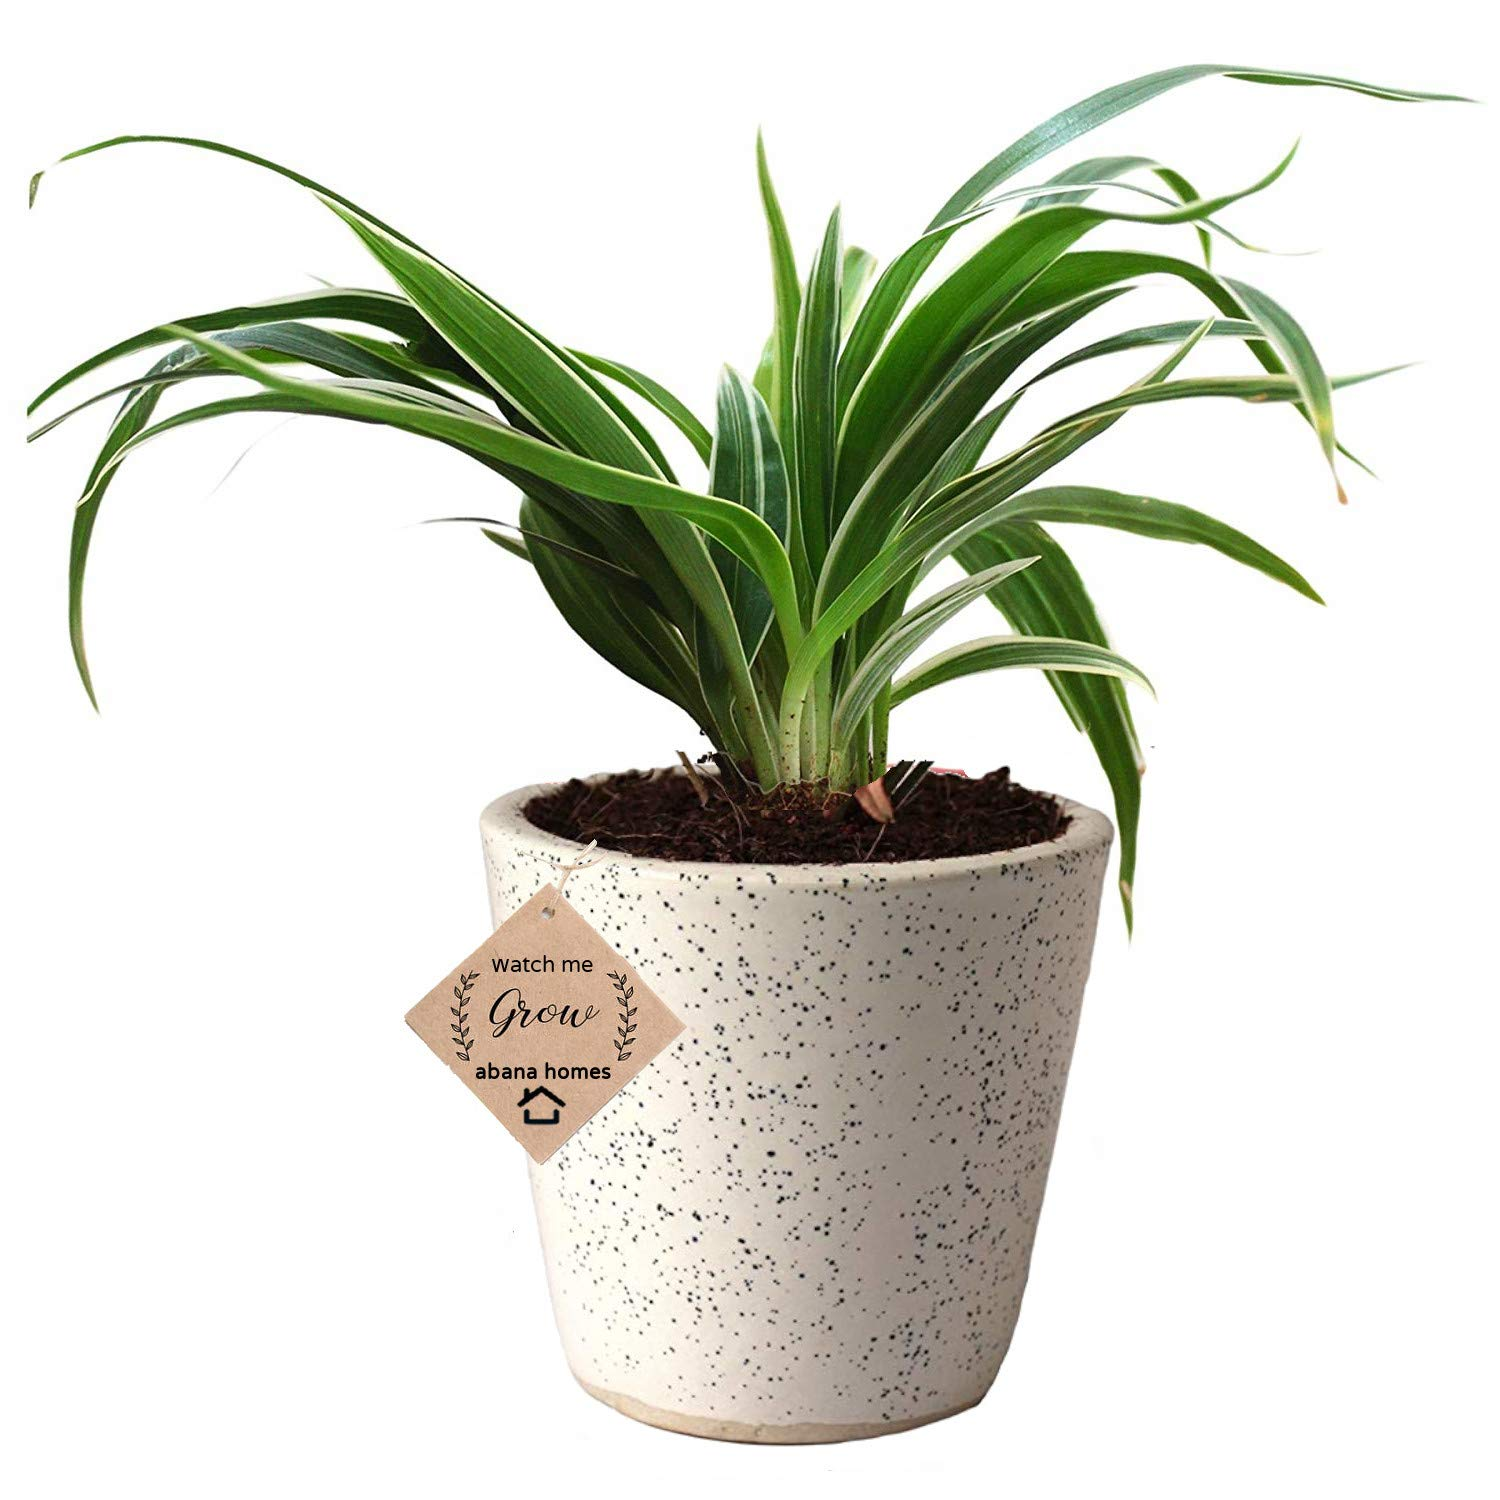 Amazon price history for Abana Homes Air Purifying Spider Plant in Ceramic Pot